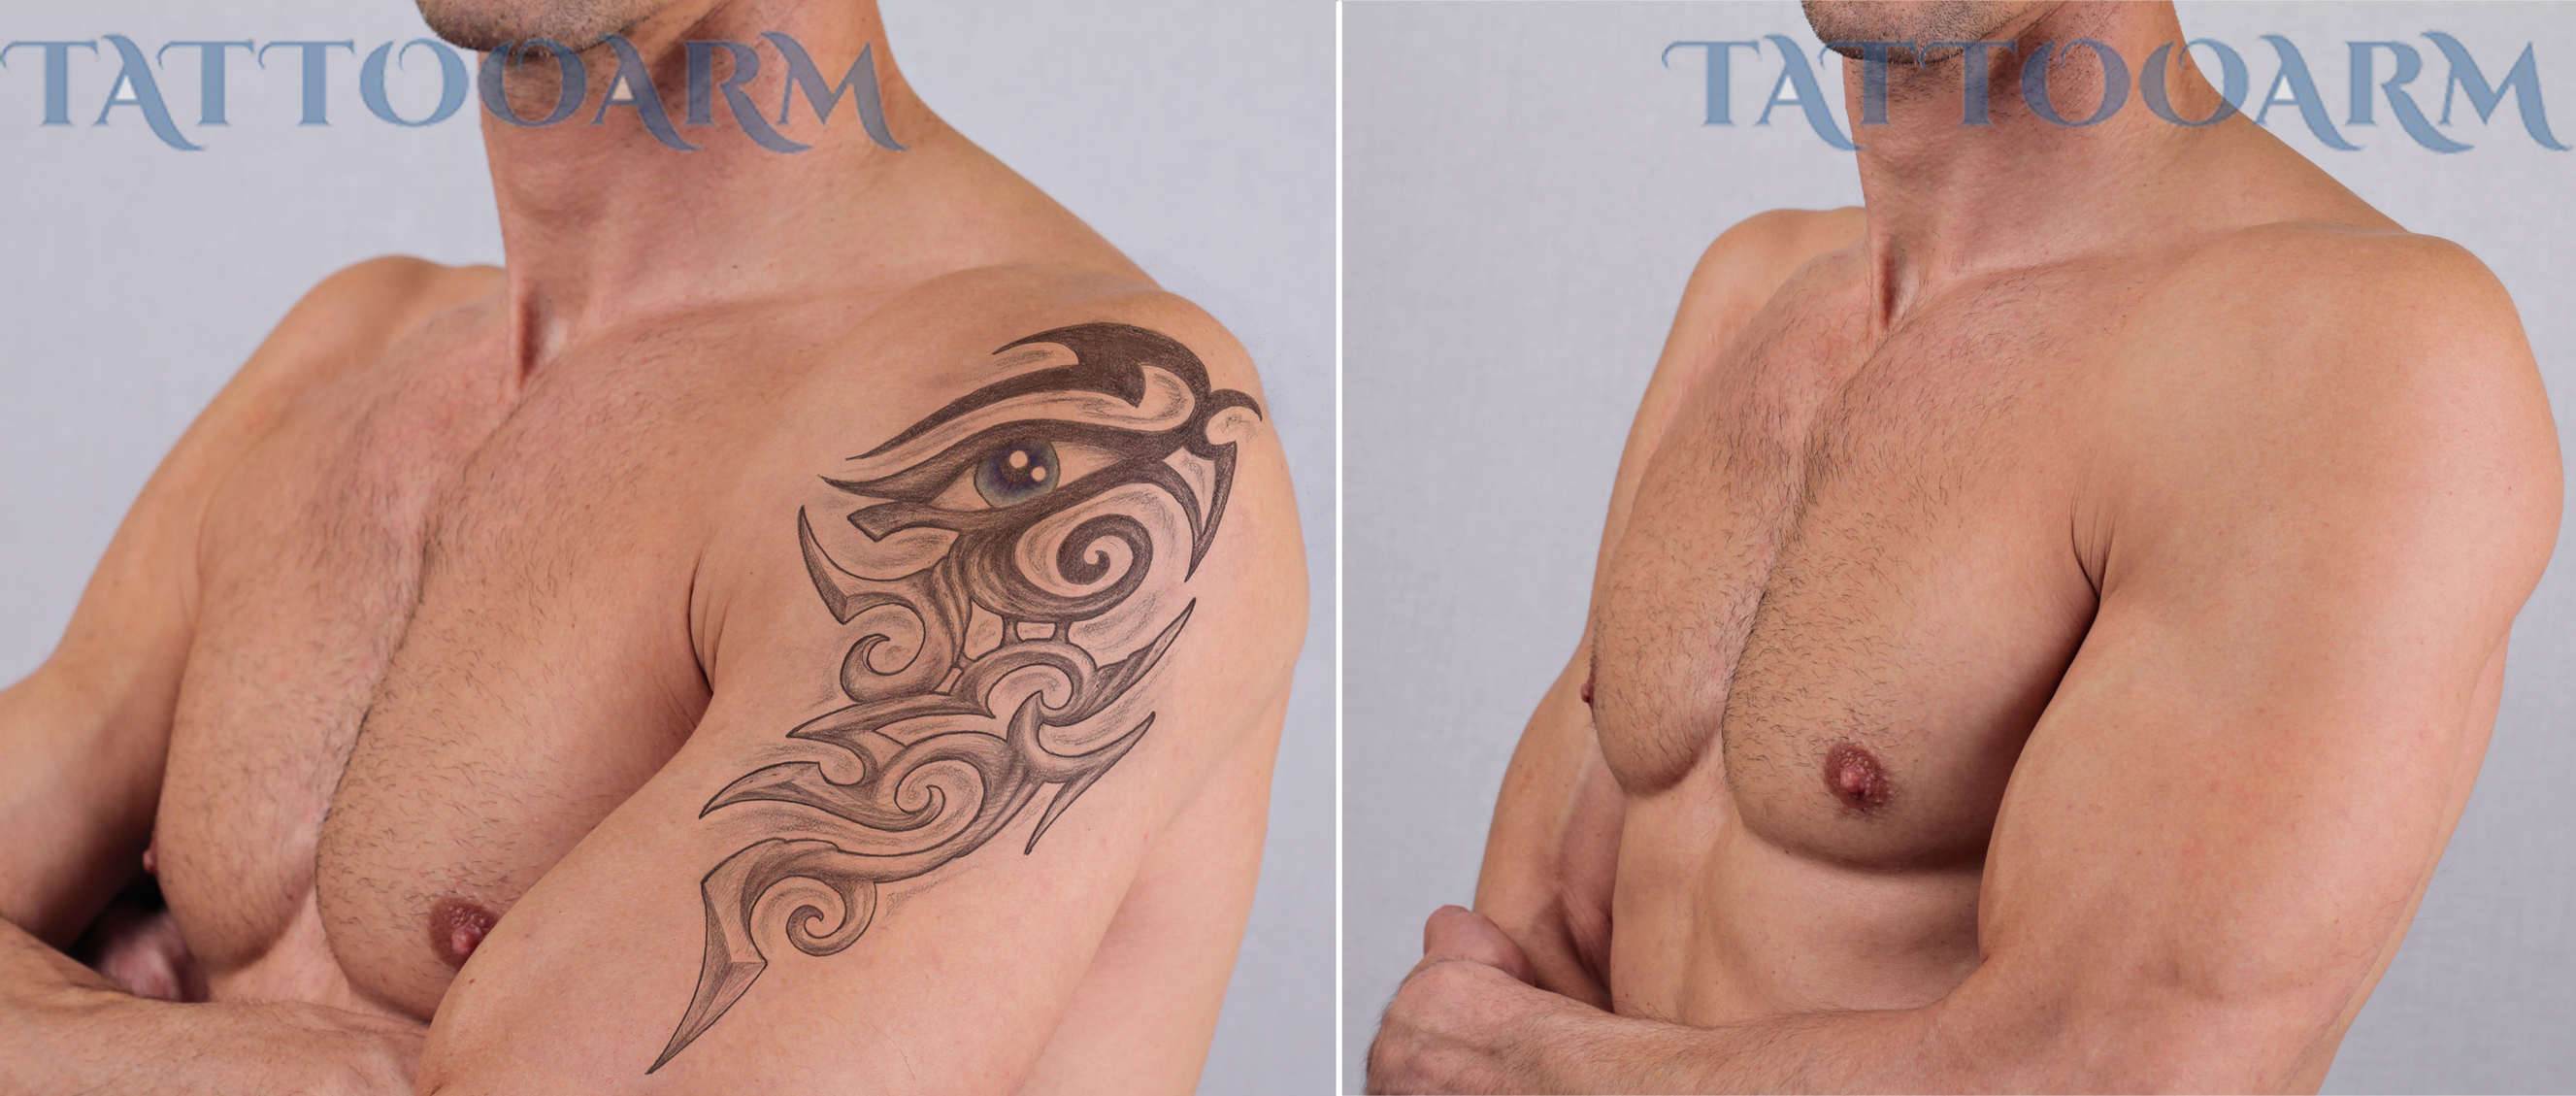 How to remove permanent tattoos without laser surgery for I want to remove my tattoo at home